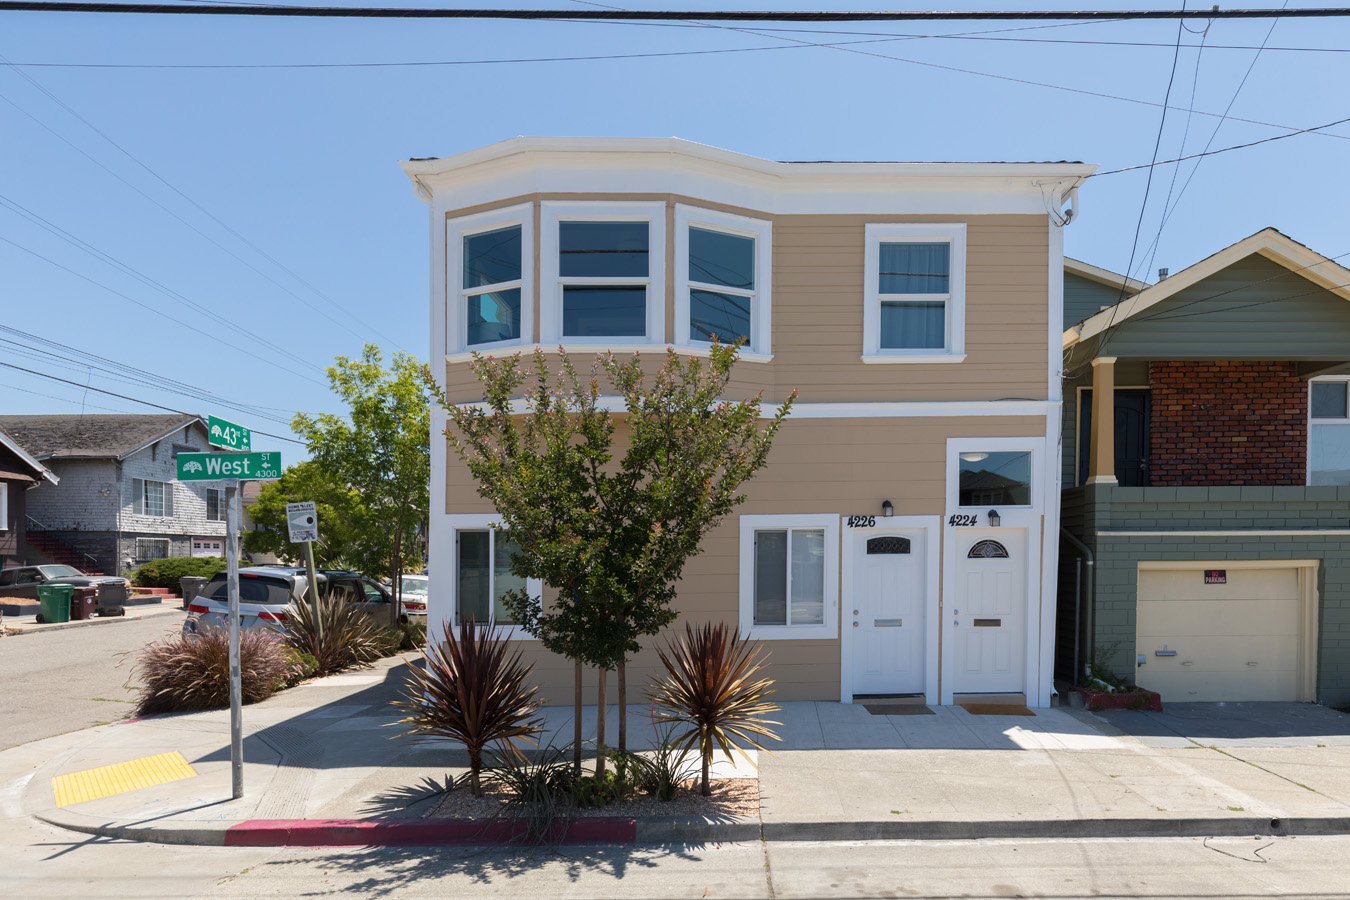 4224 West Street, Oakland, CA 94608